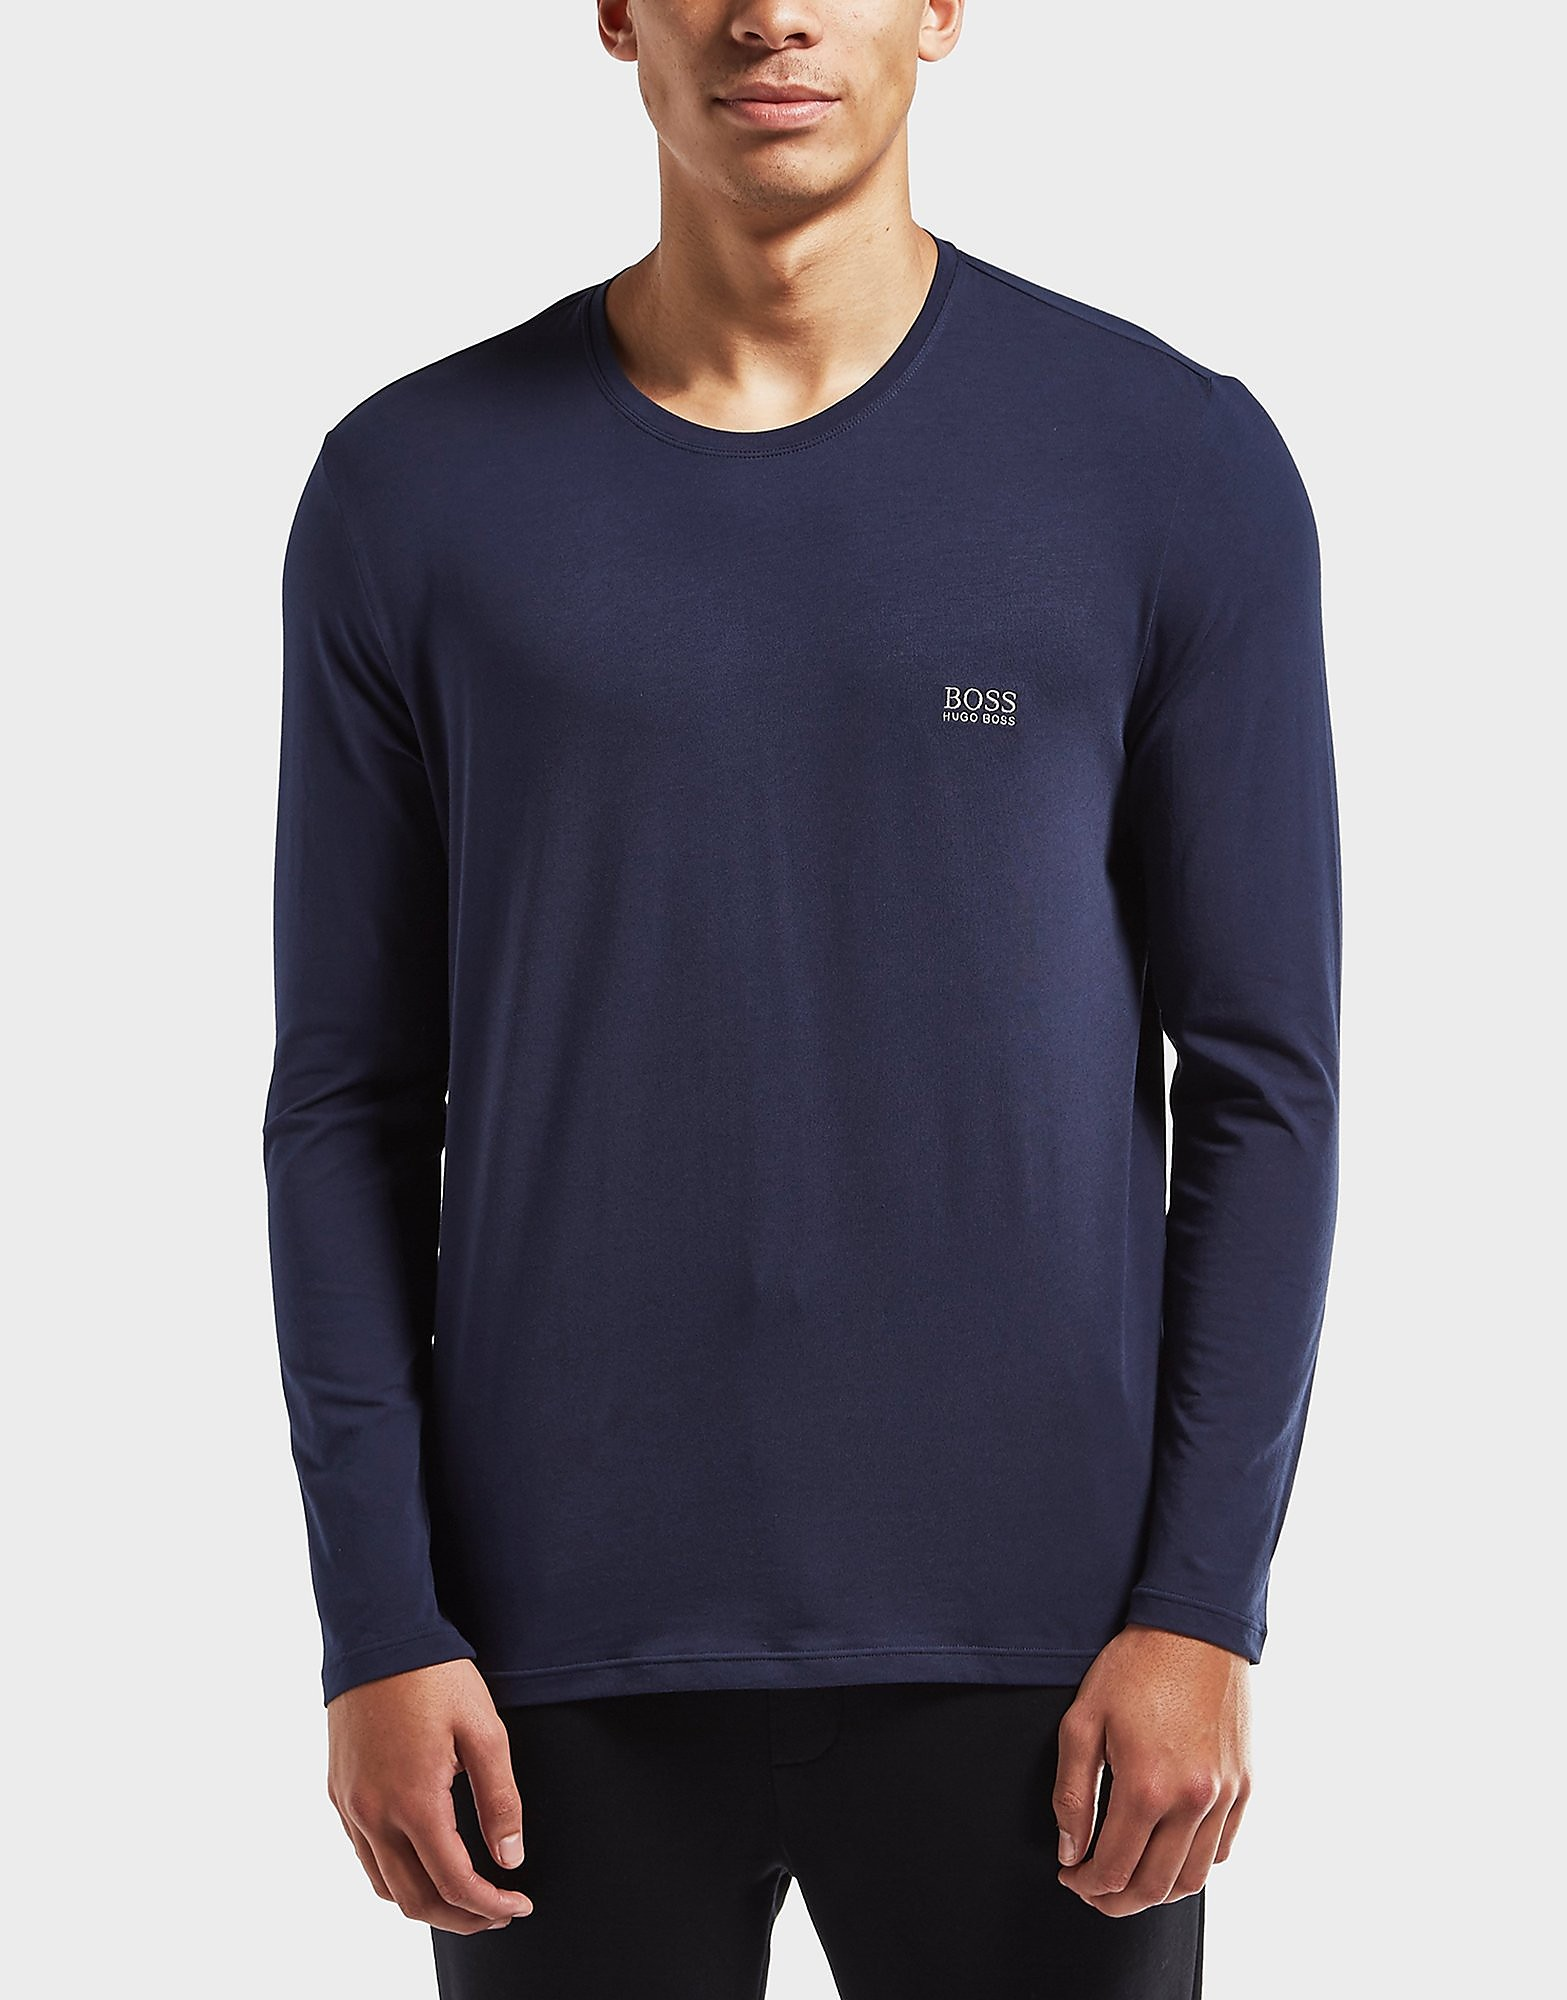 BOSS Embossed Logo Long Sleeve T-Shirt